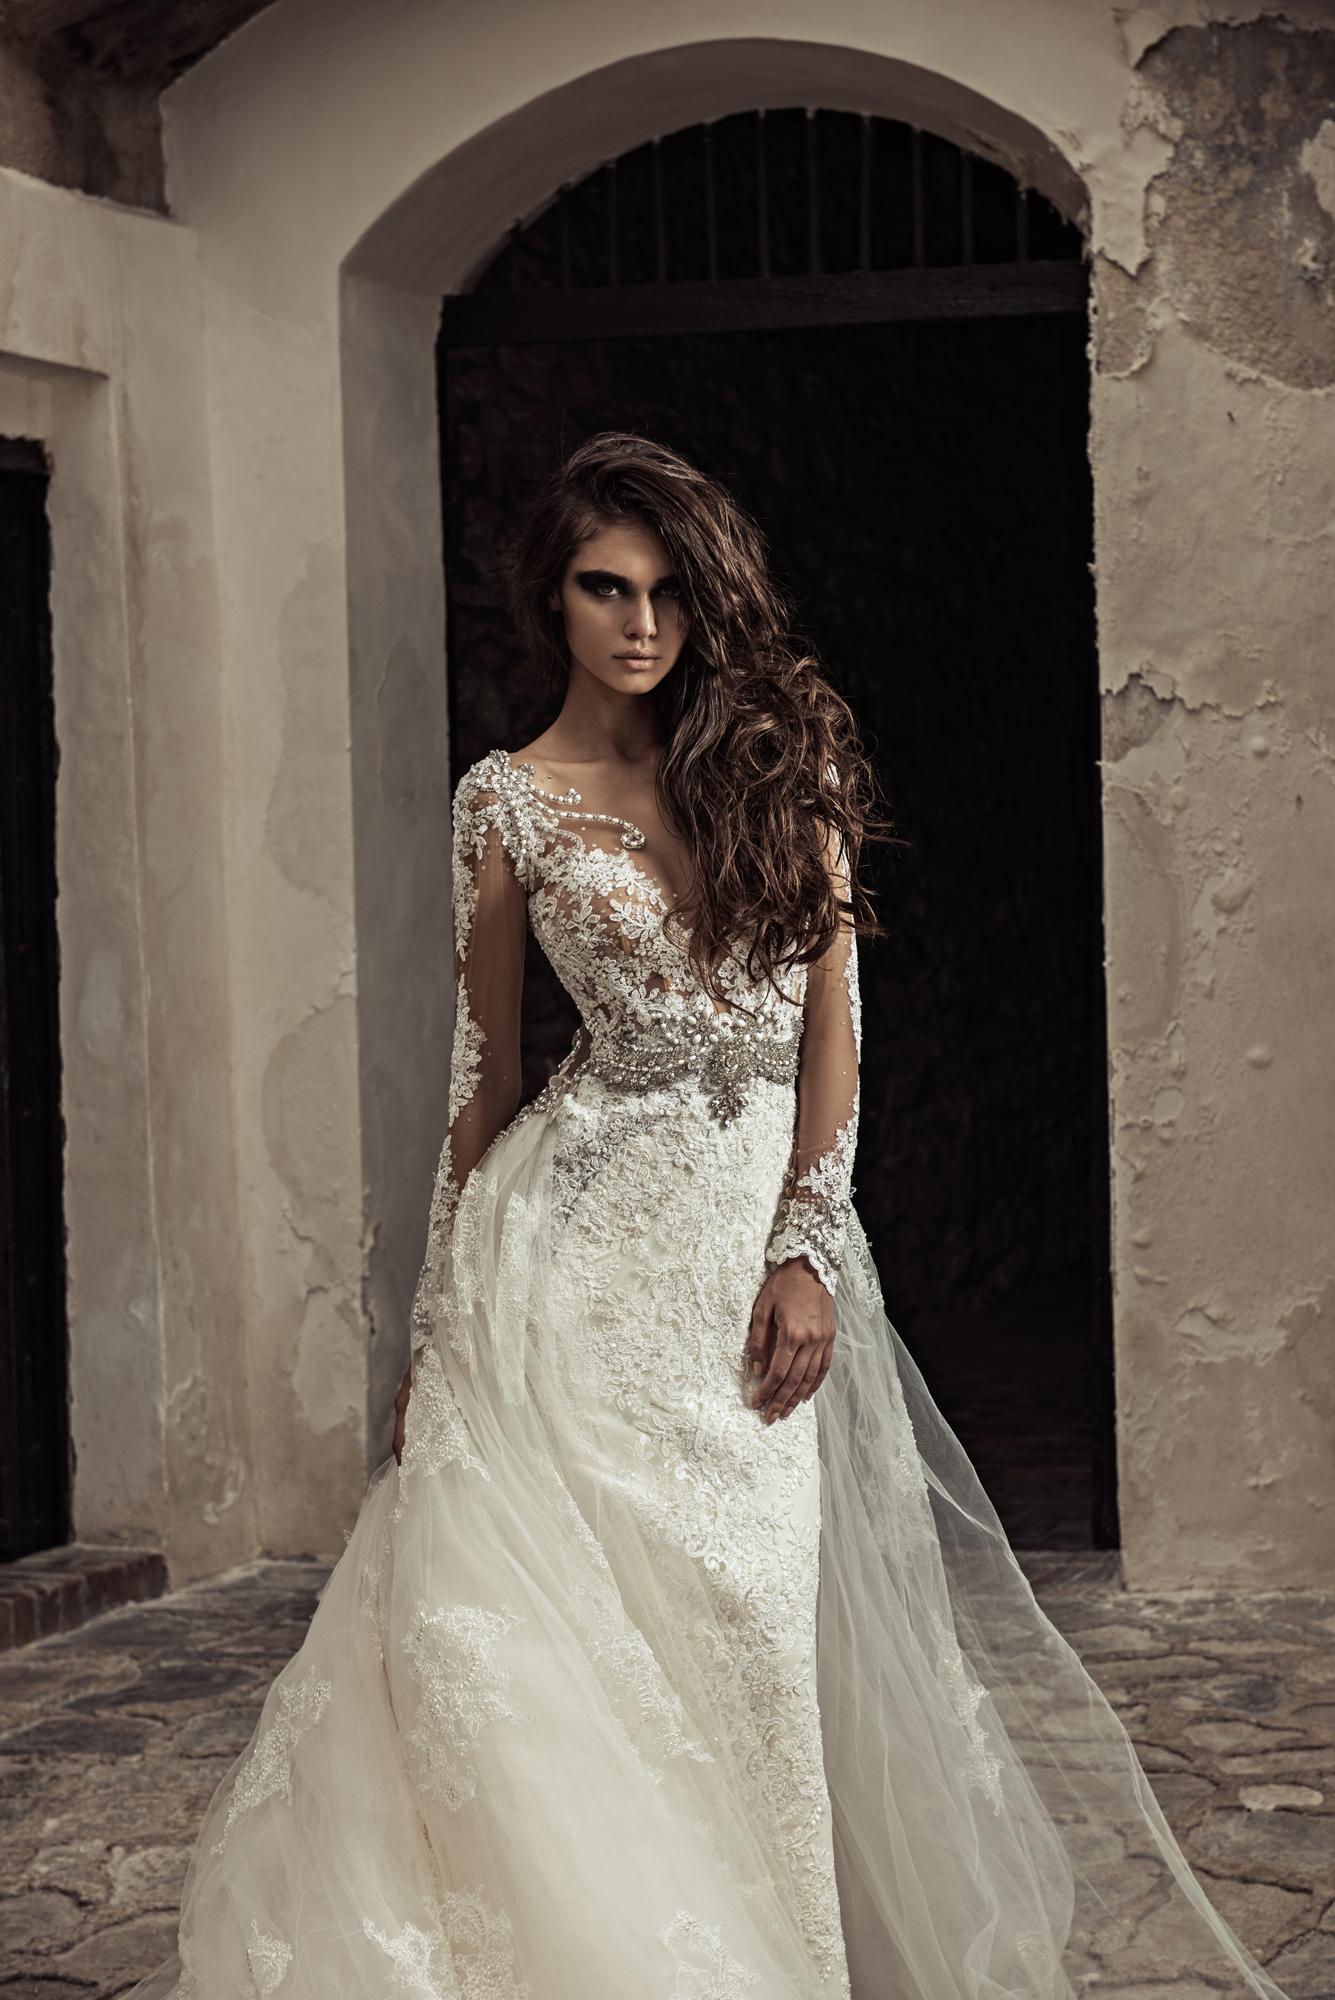 1713 - This long sleeve lace mermaid wedding gown features a detachable skirt and is embellished with crystals and pearls. The illusion back leads into an exposed zipper with crystal beading and buttons going up the back. Also features a royal cathedral train.